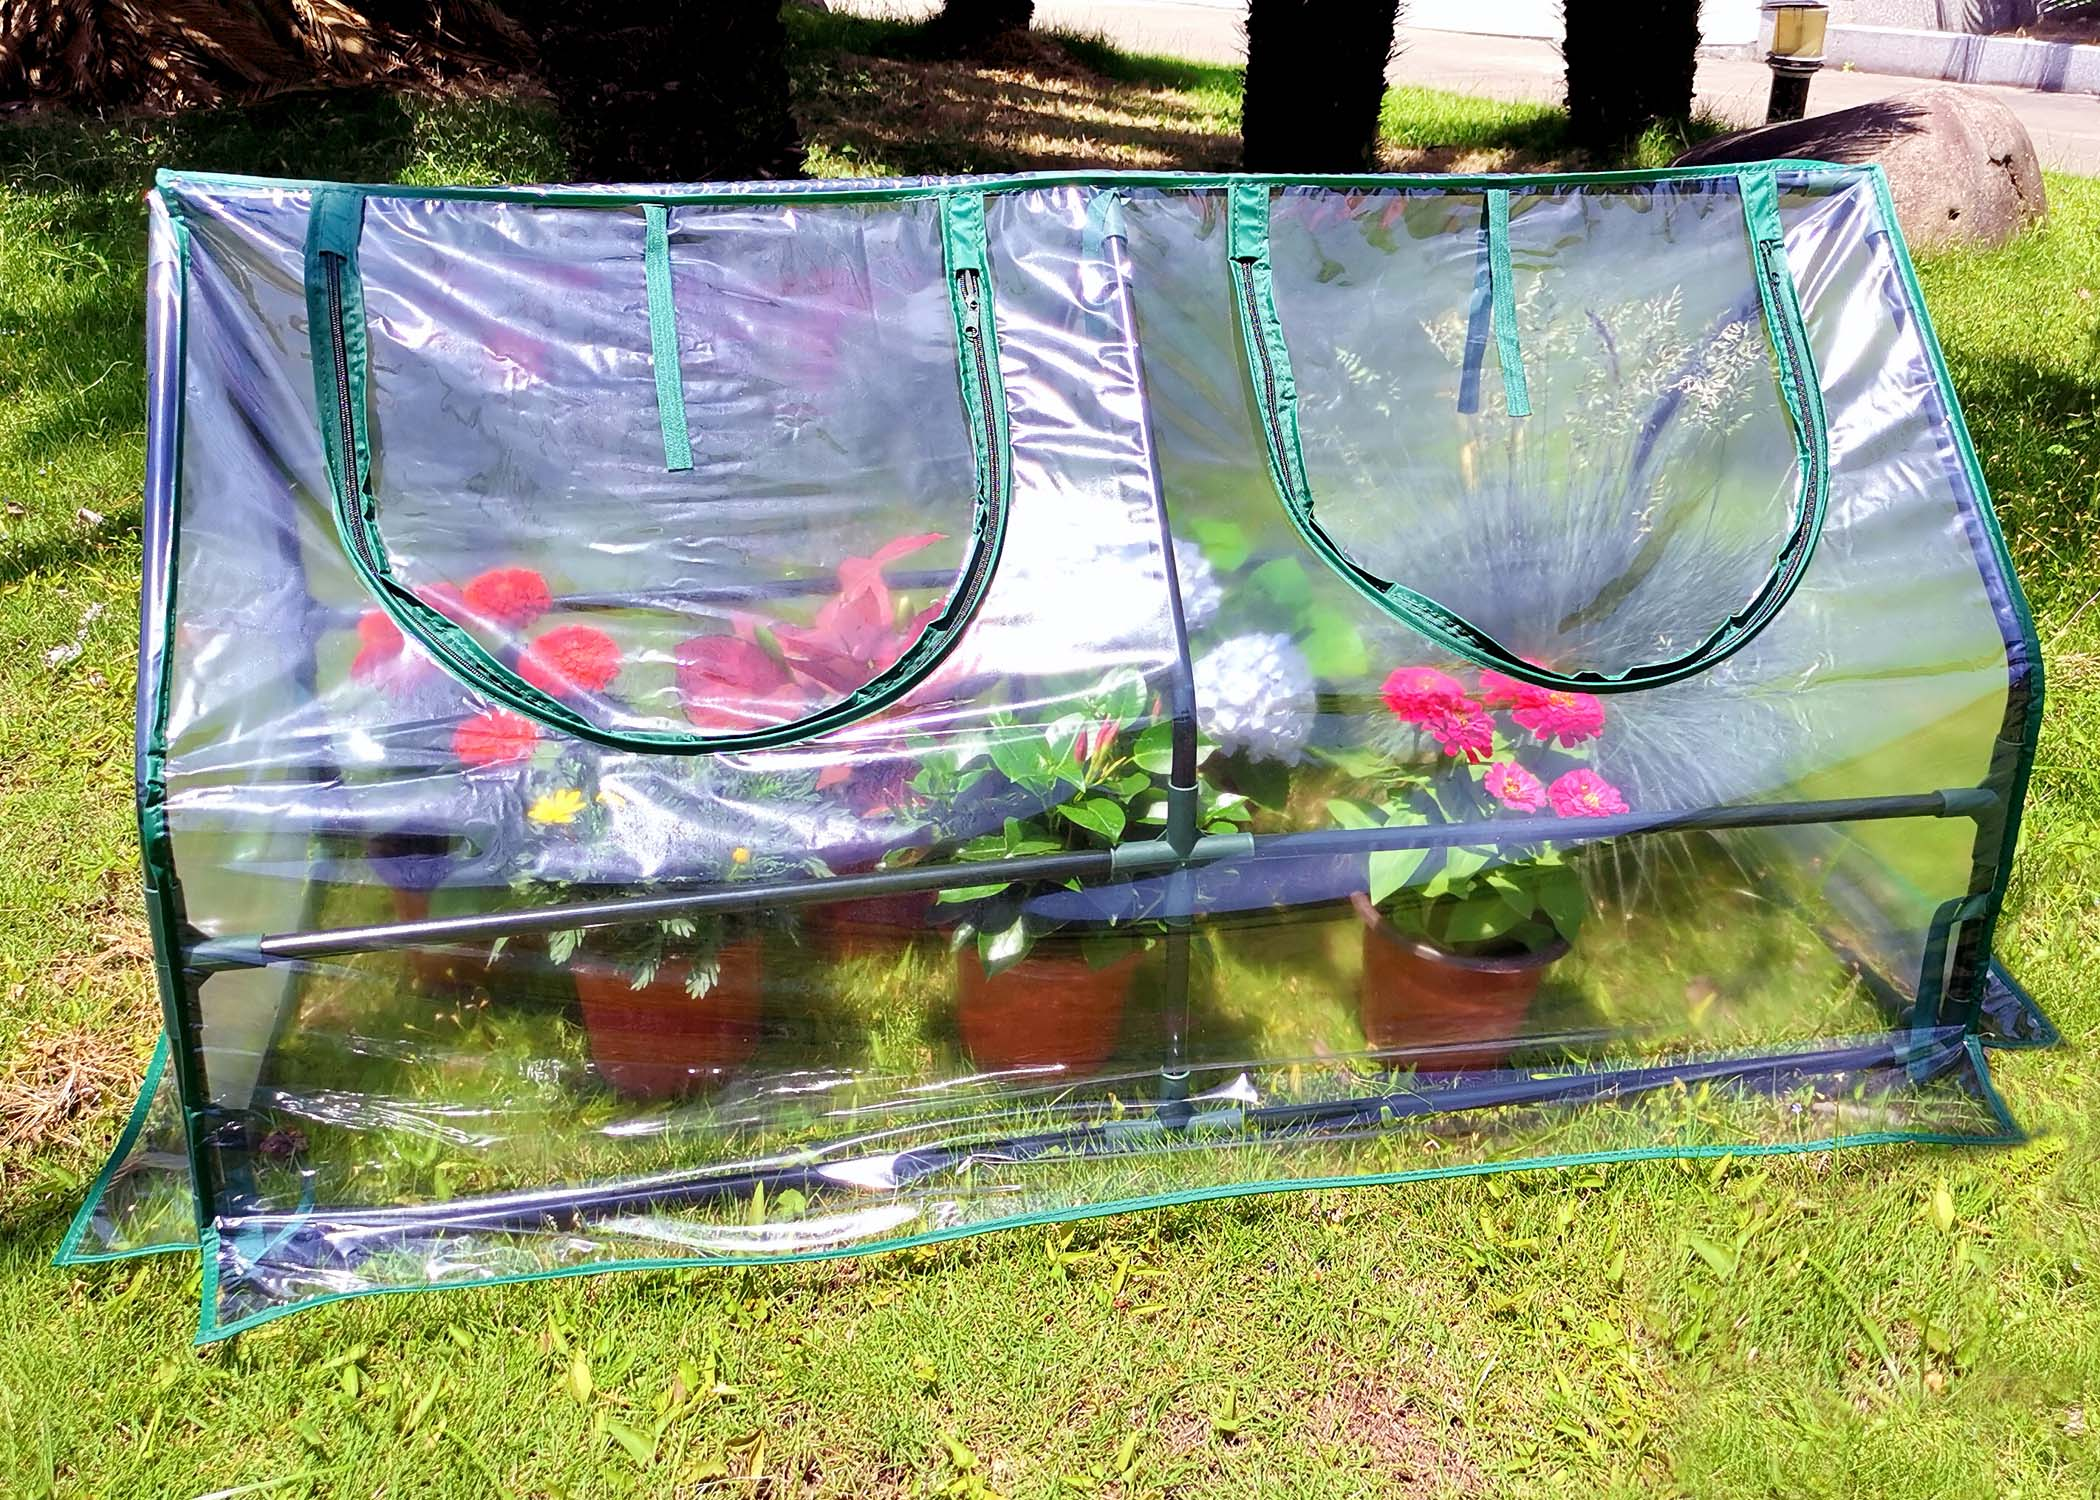 Mini Greenhouse SH3212A Garden Cold Frame Greenhouse Cloche for Easy Access Protected Gardening